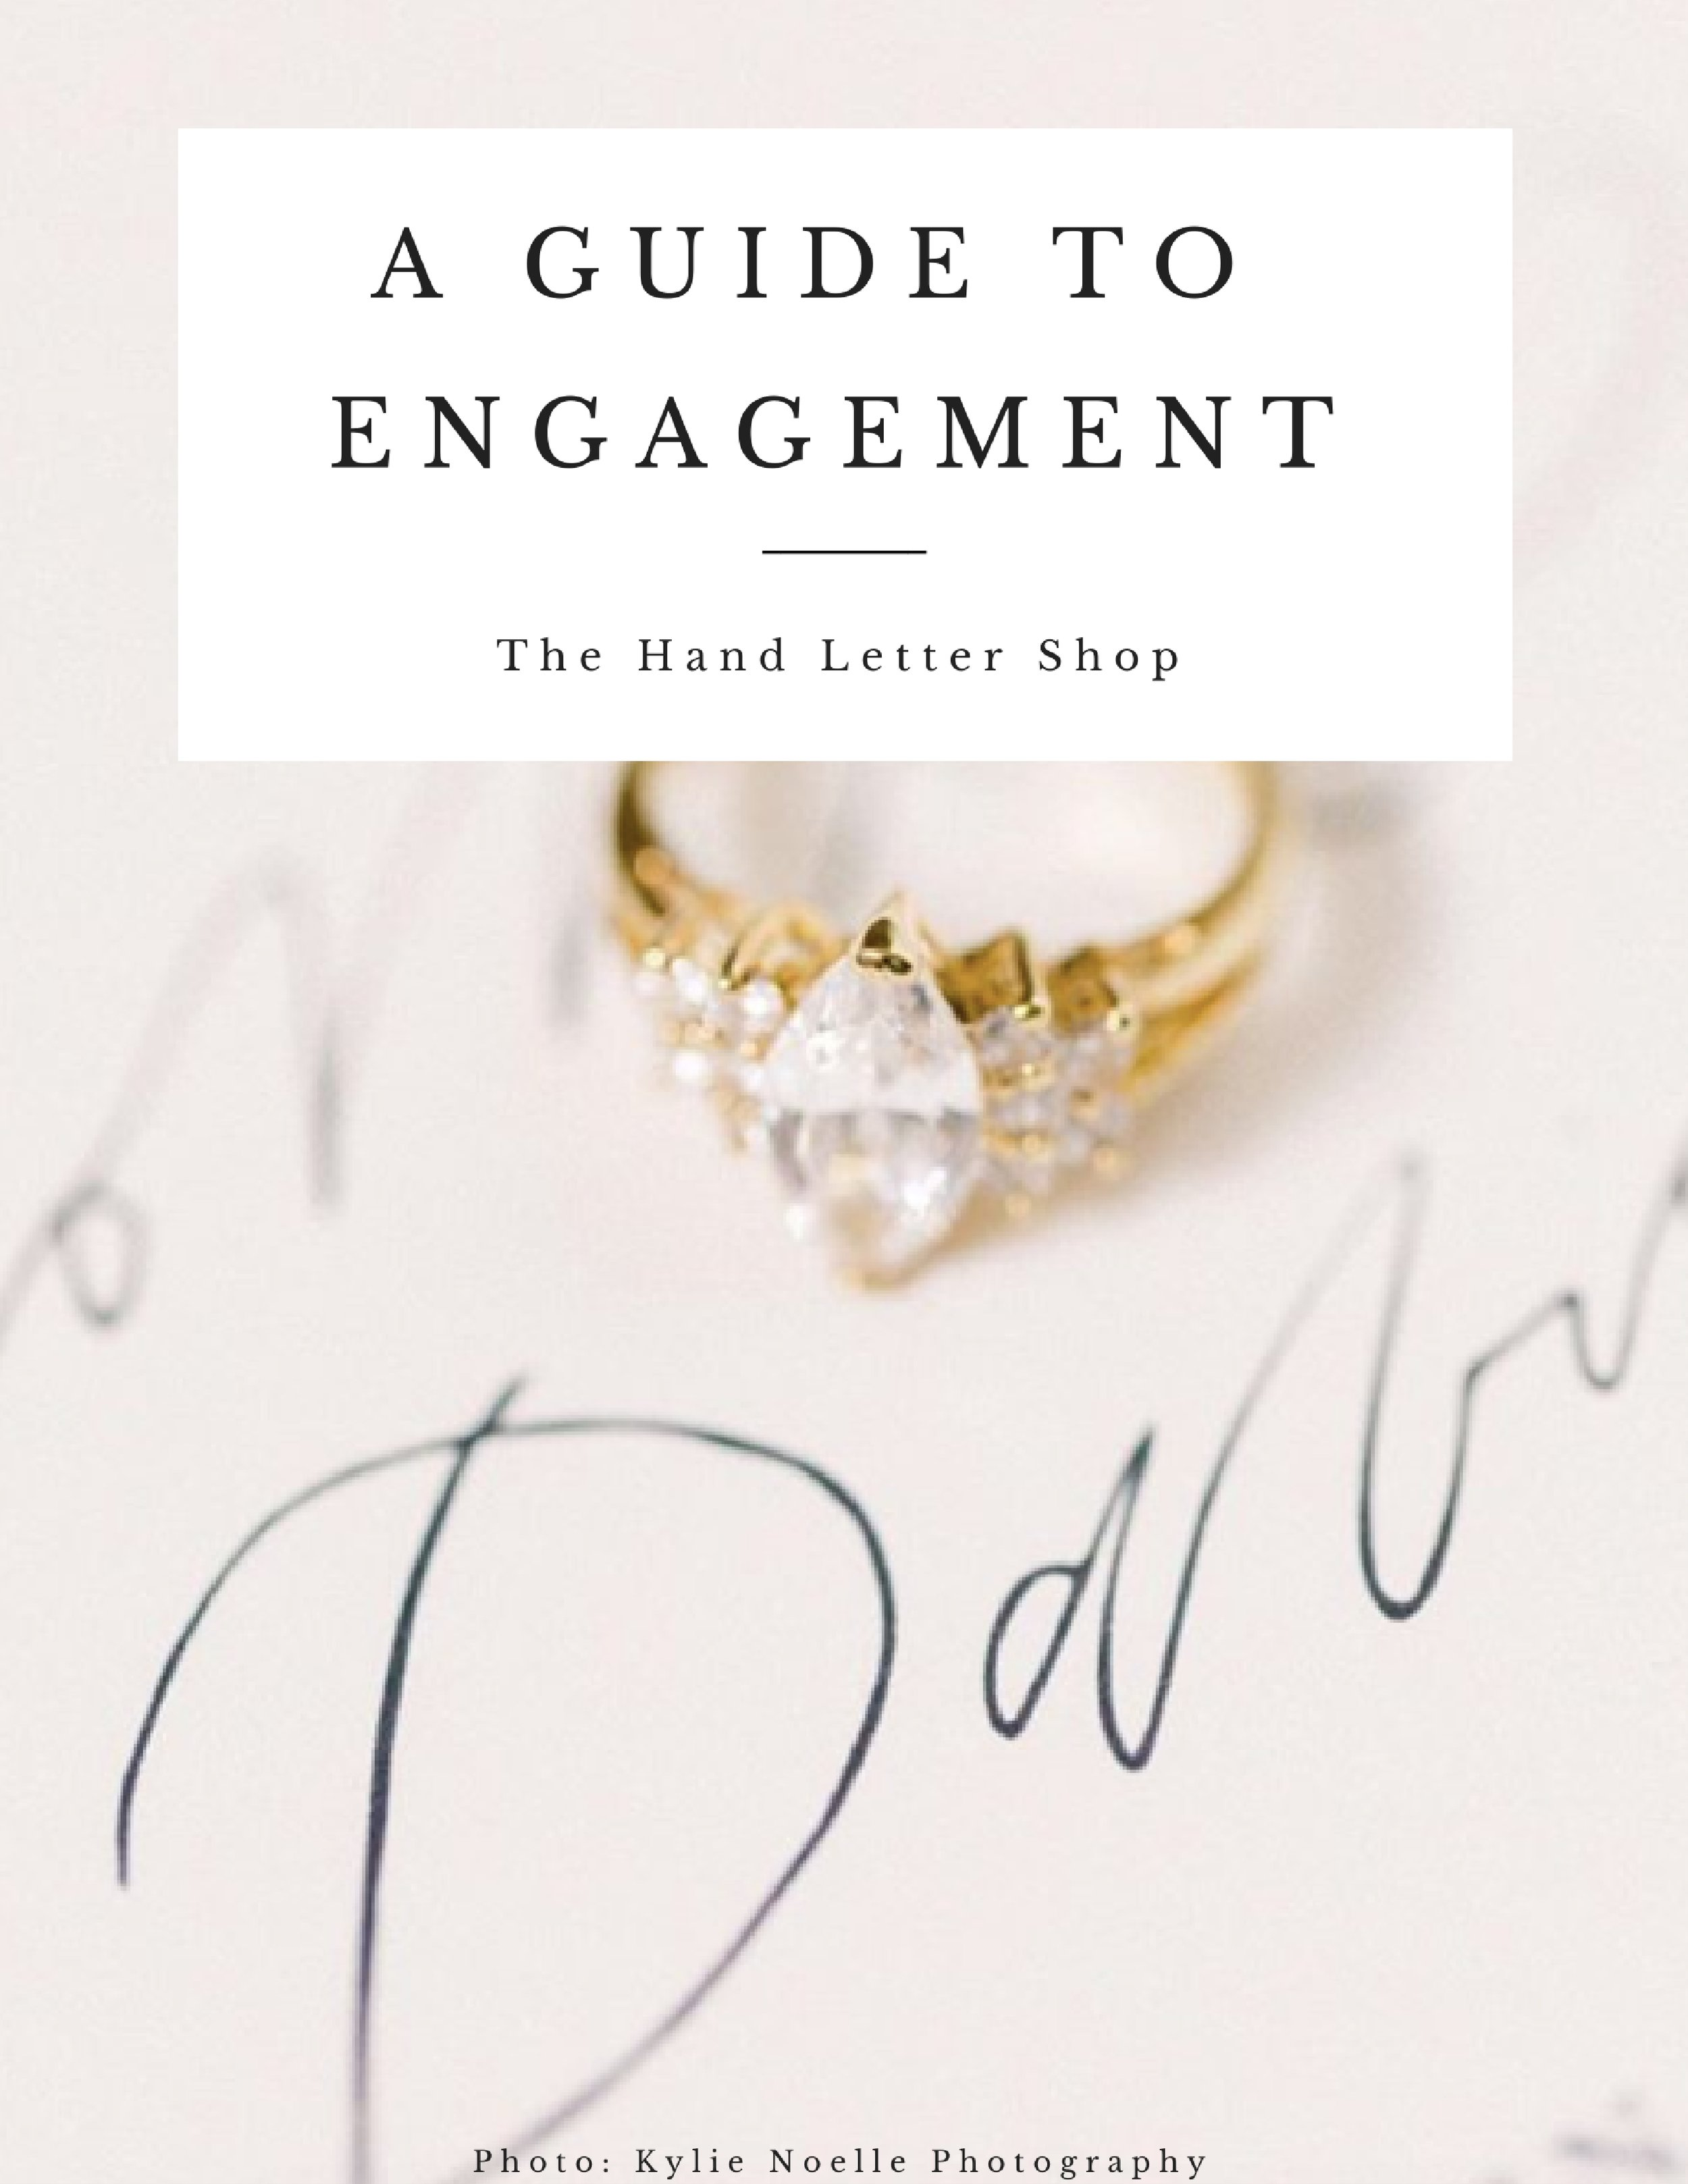 Your engagement doesn't have to be stressful! - Learn how to savor this time (and stay organized) with a free Guide to Engagement.